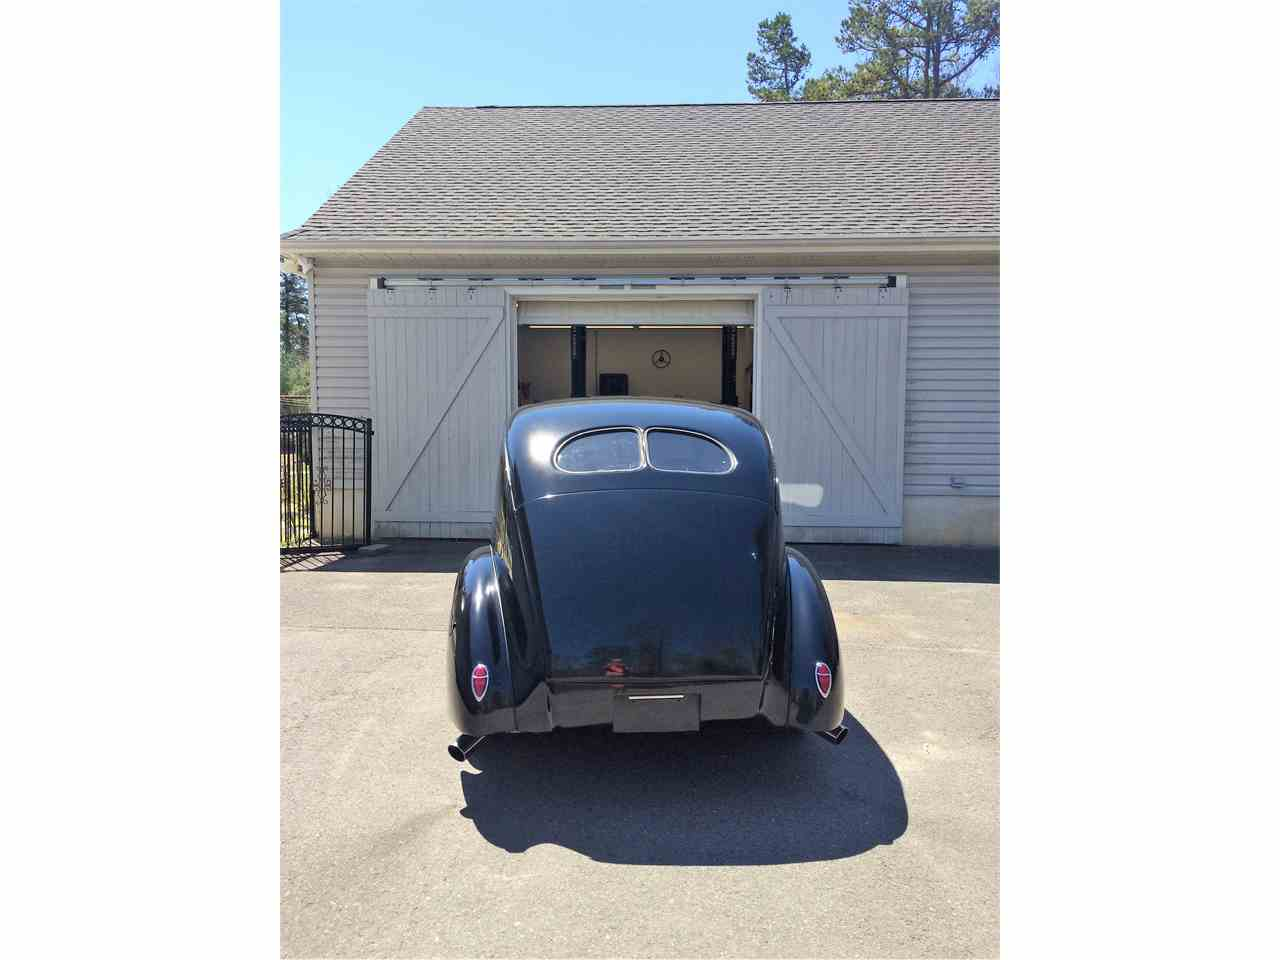 Large Picture of '40 Ford Deluxe - $25,000.00 Offered by a Private Seller - MWKZ